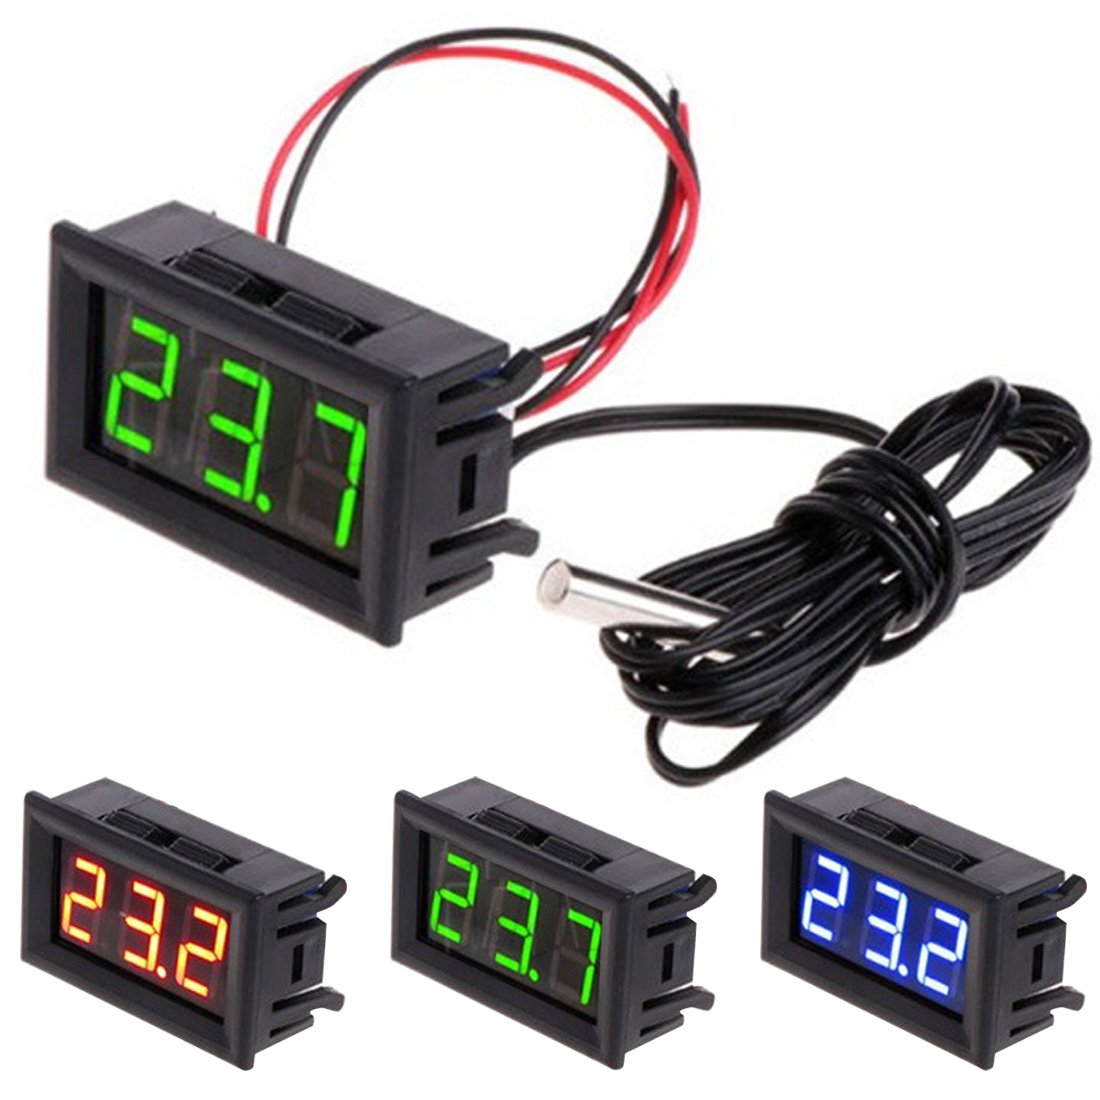 Mini DC 5-<font><b>12V</b></font> Digital <font><b>LED</b></font> -50 ~ 110C <font><b>Thermometer</b></font> Automotive Temperatur Monitor Panel Meter Digital <font><b>Thermometer</b></font> image